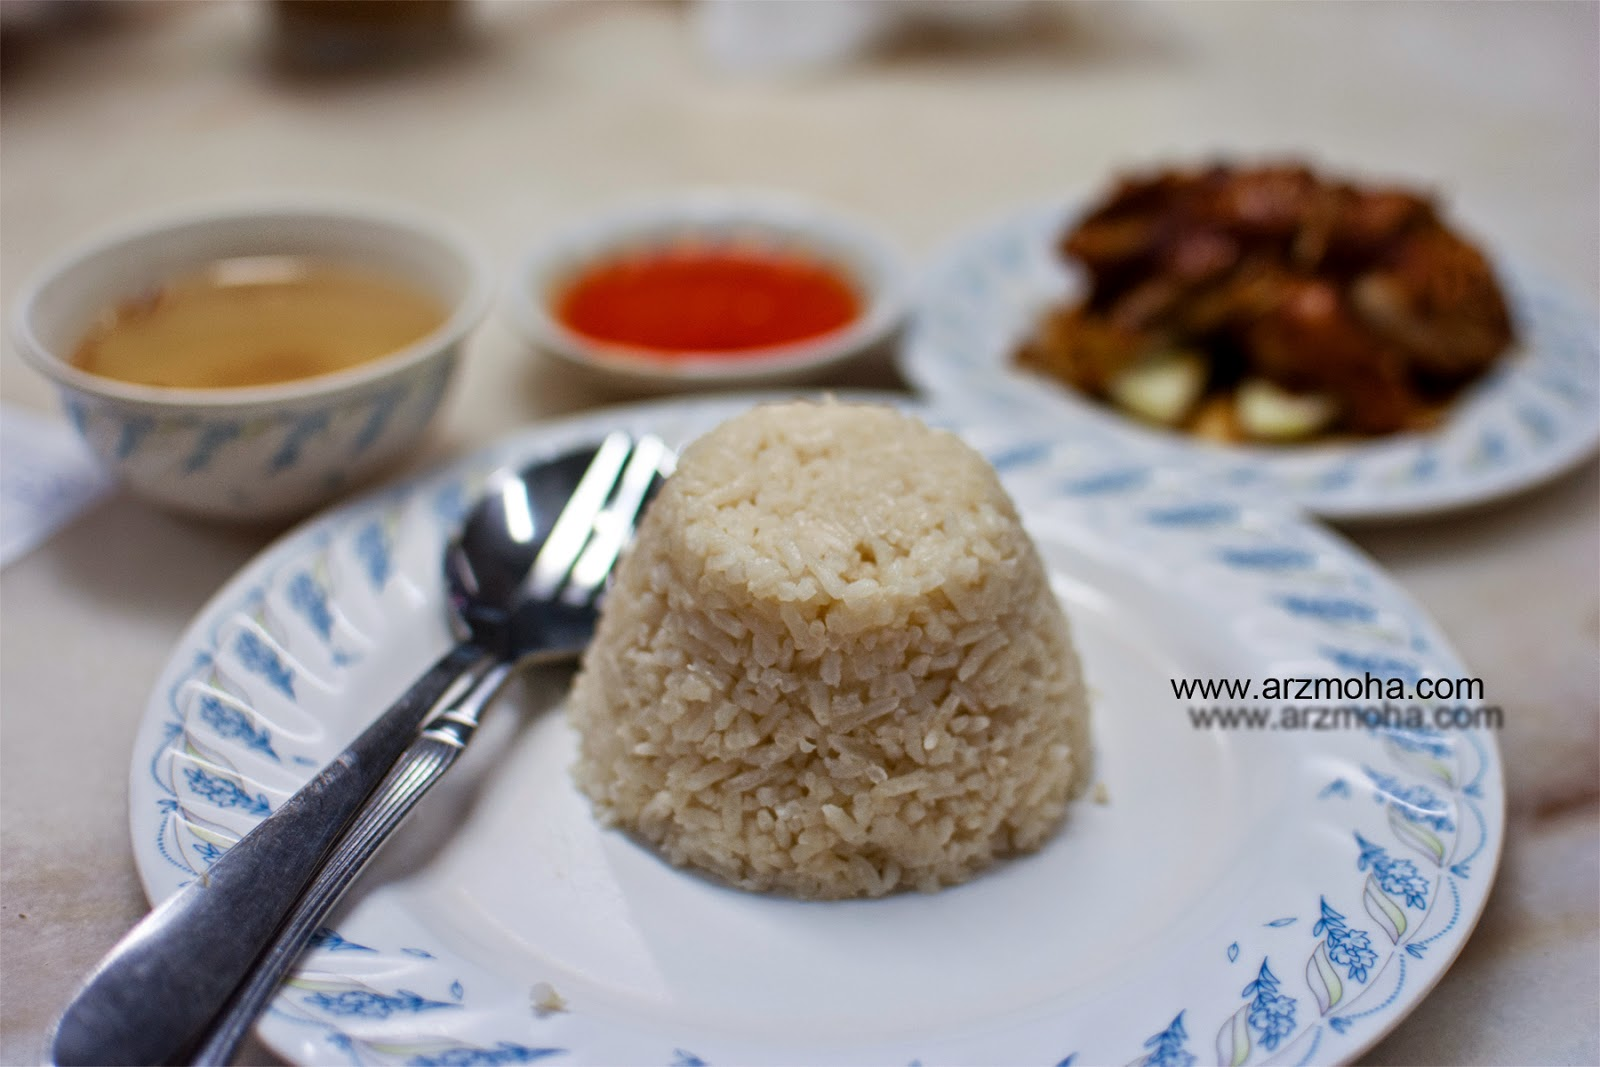 Doli, Taiping, Nasi Ayam, Chicken Rice, Awesome food, Taiping, Malaysia